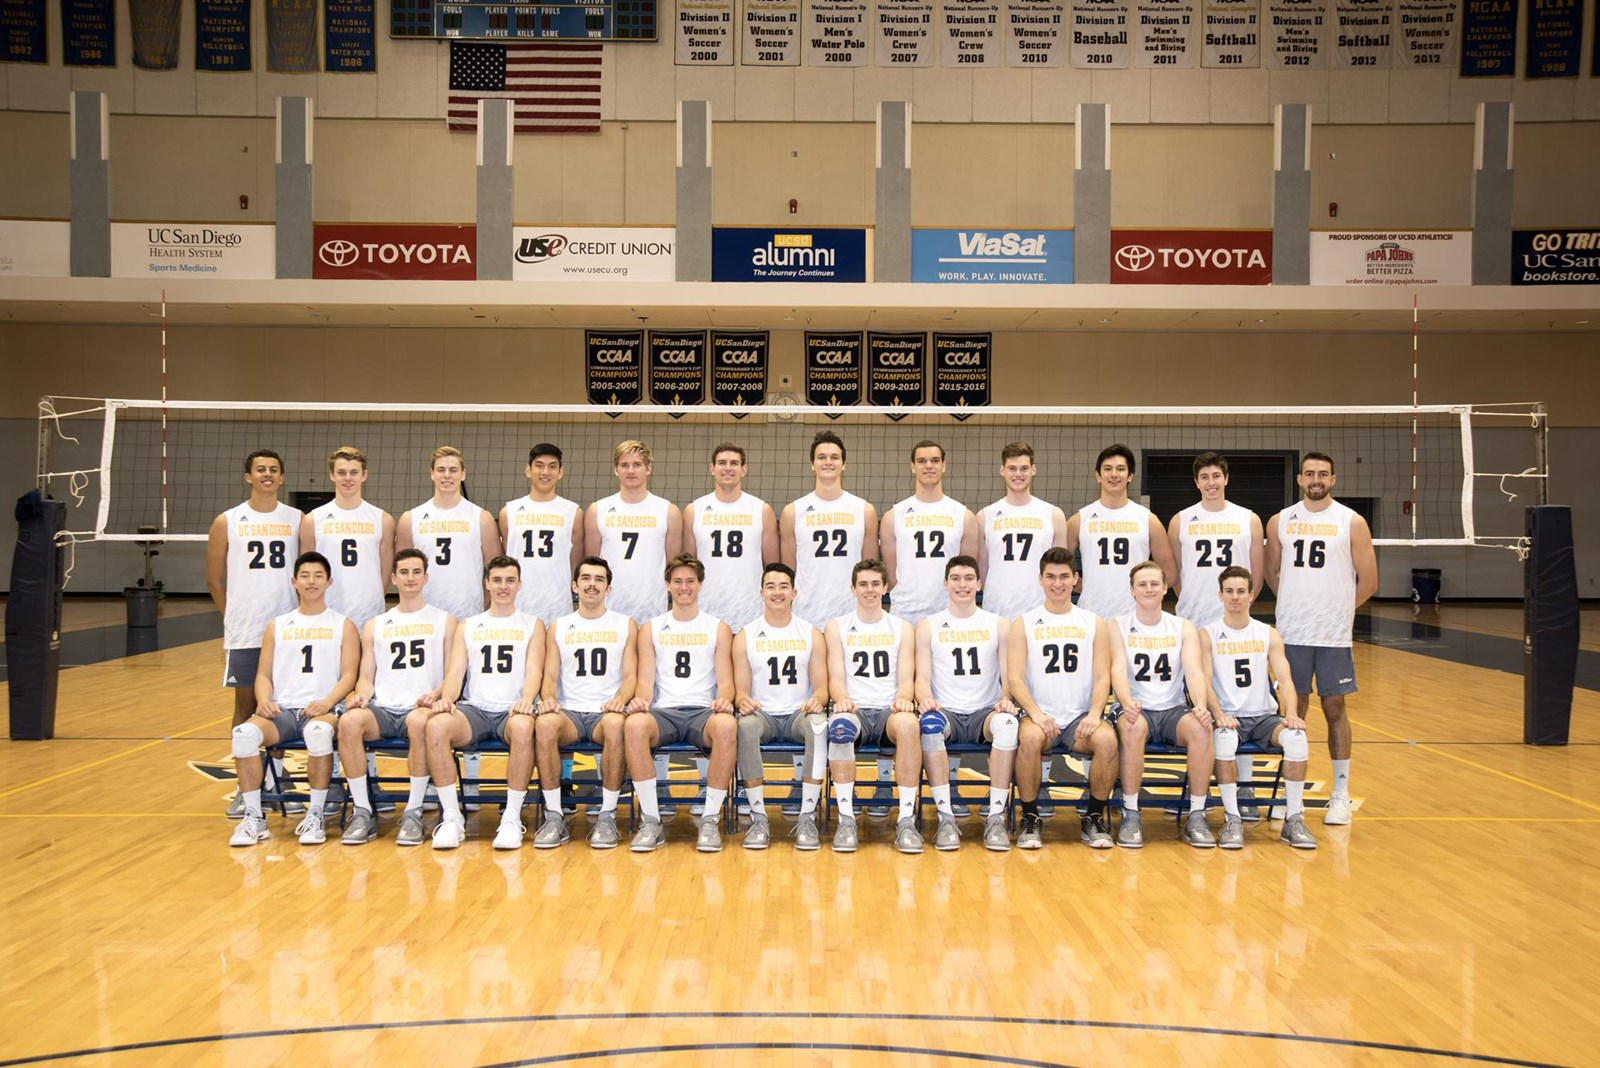 2018 Men S Volleyball Roster Uc San Diego